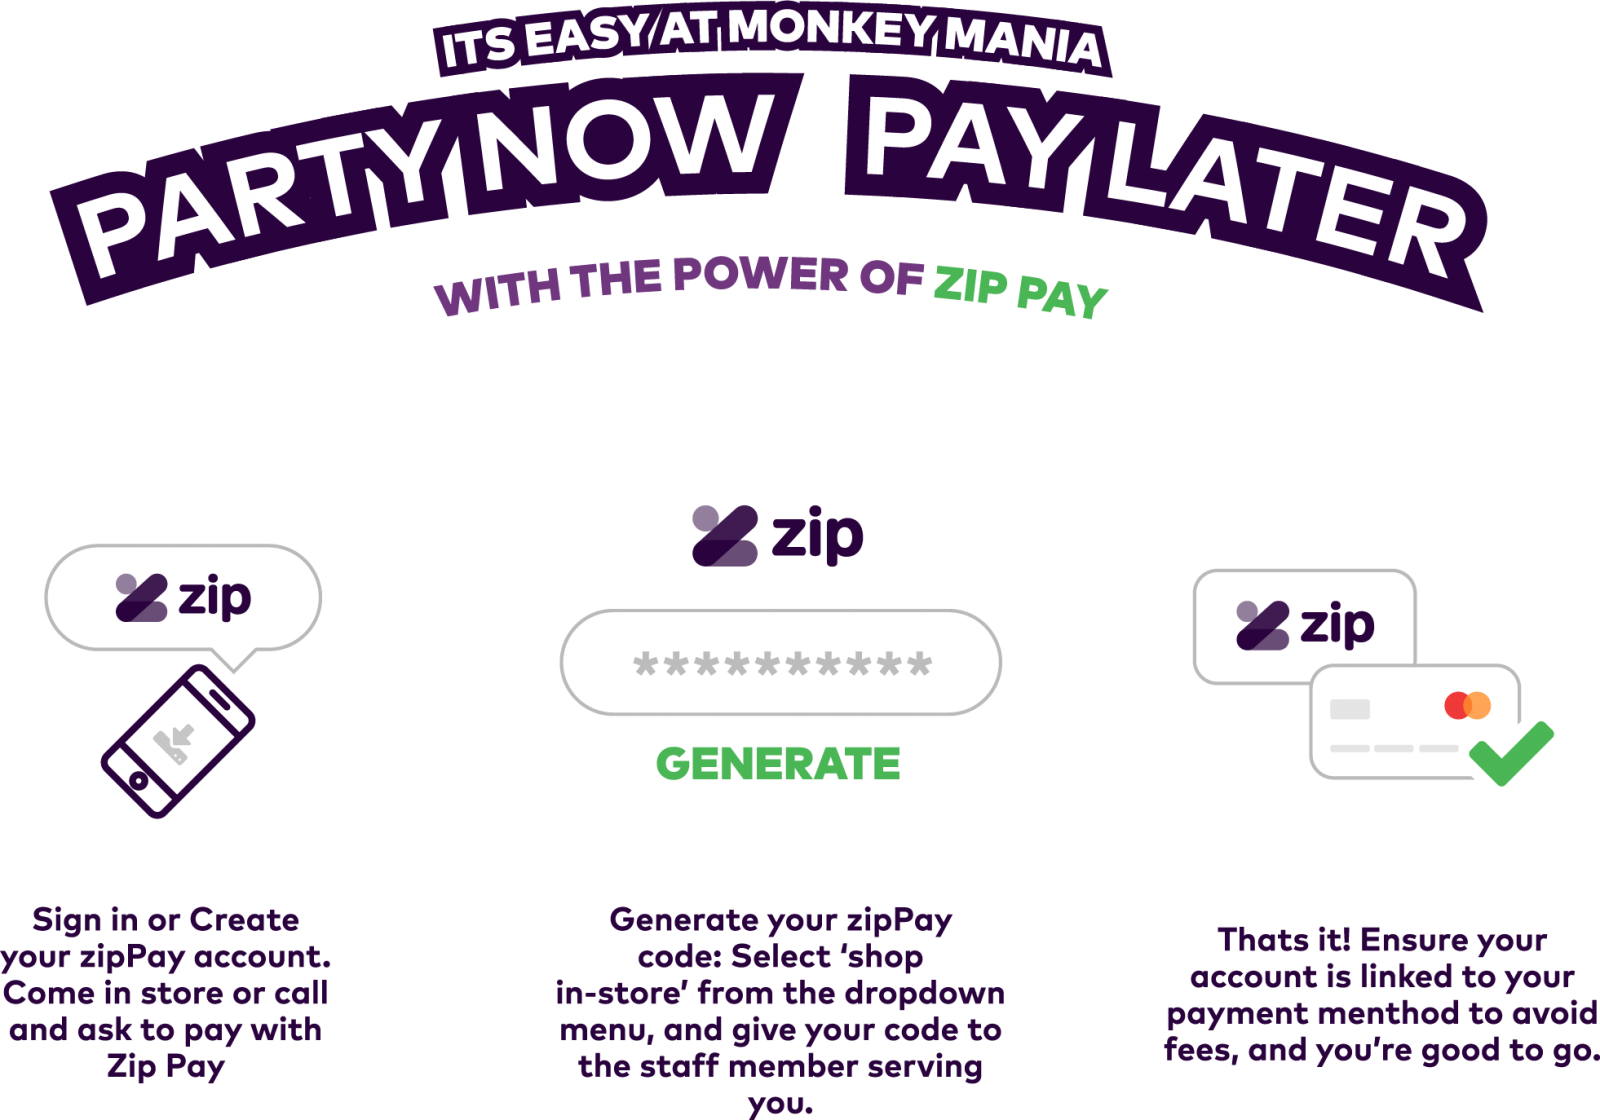 Party Now & Pay Later with ZipPay